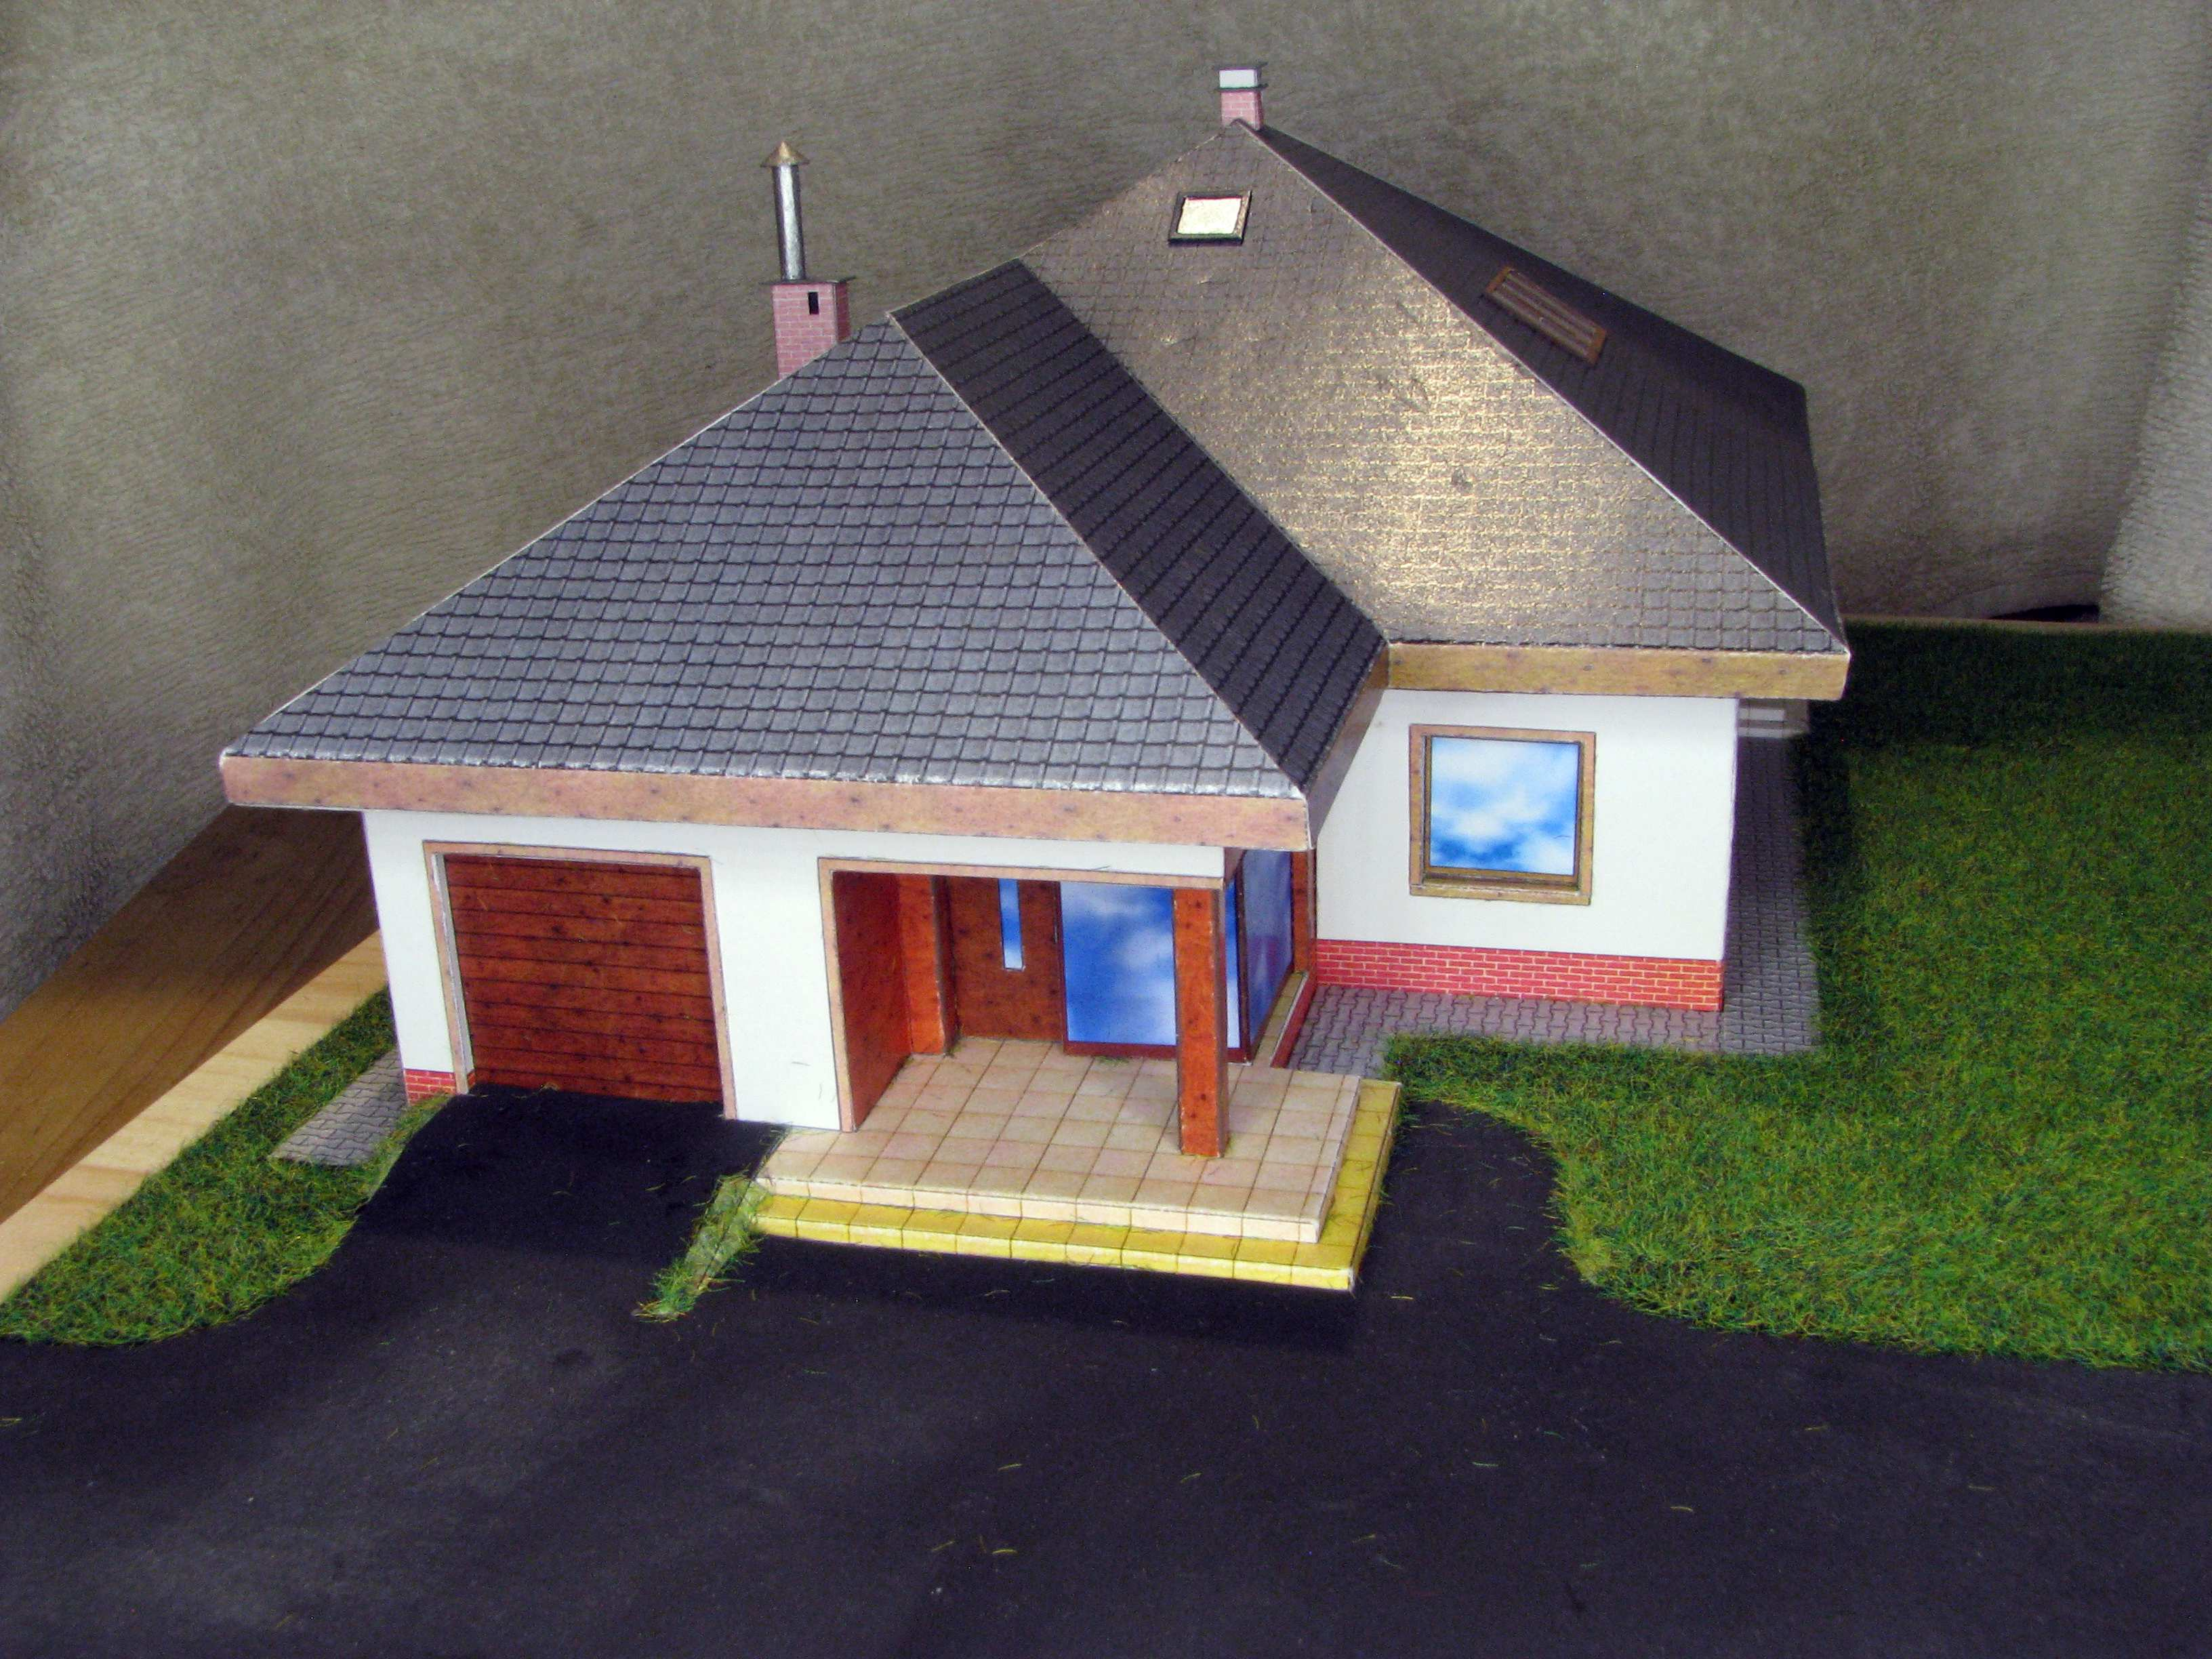 1:87 papre model house by Pawel